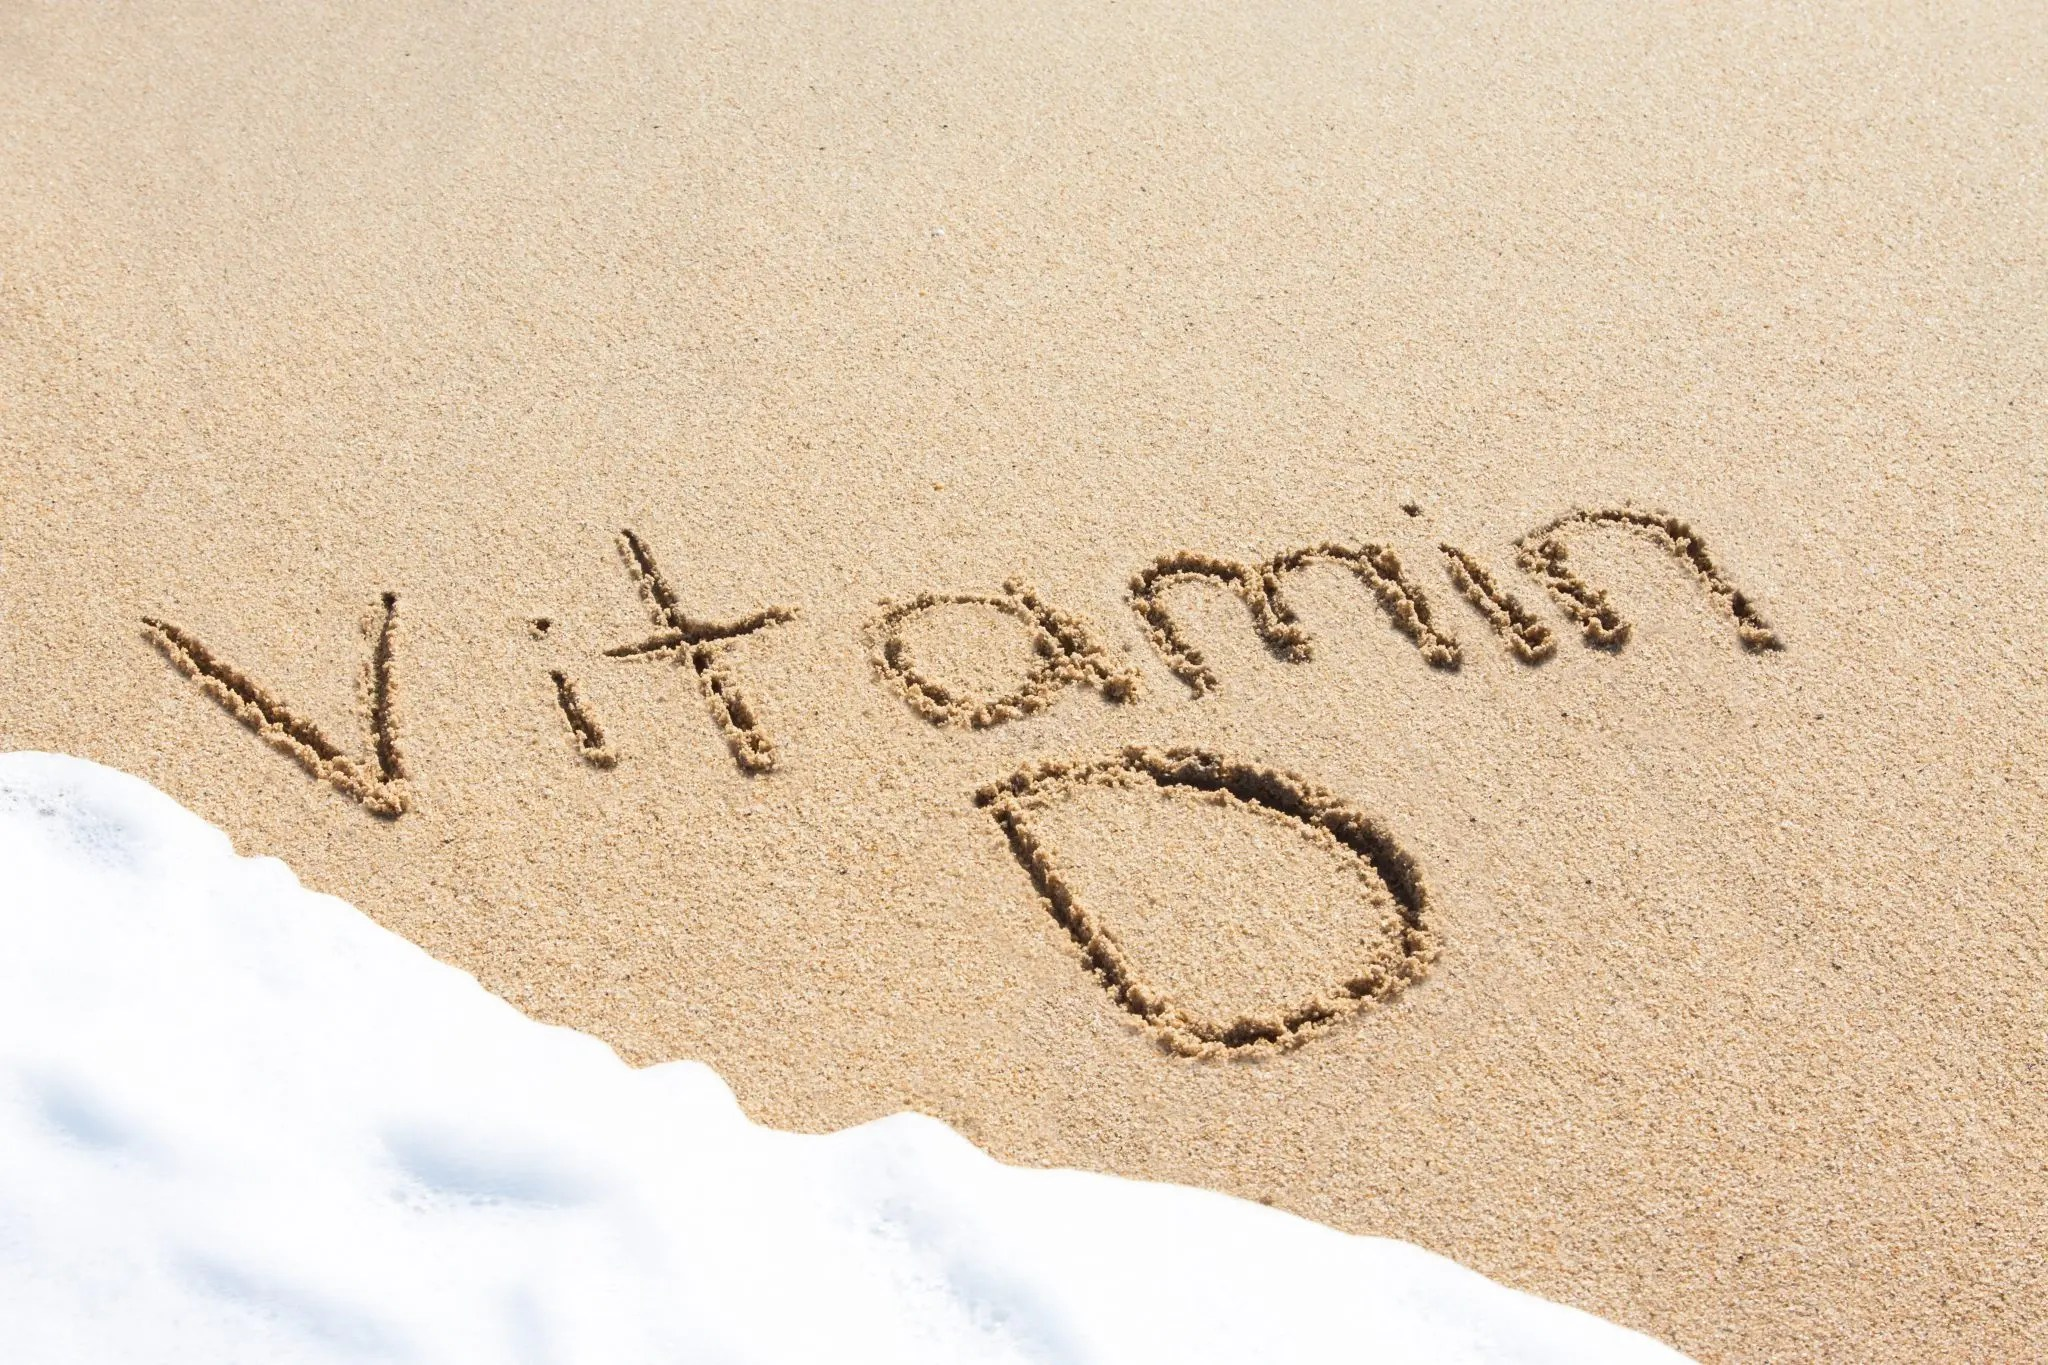 Can Vitamin D slow the growth of early colon cancer tumors?